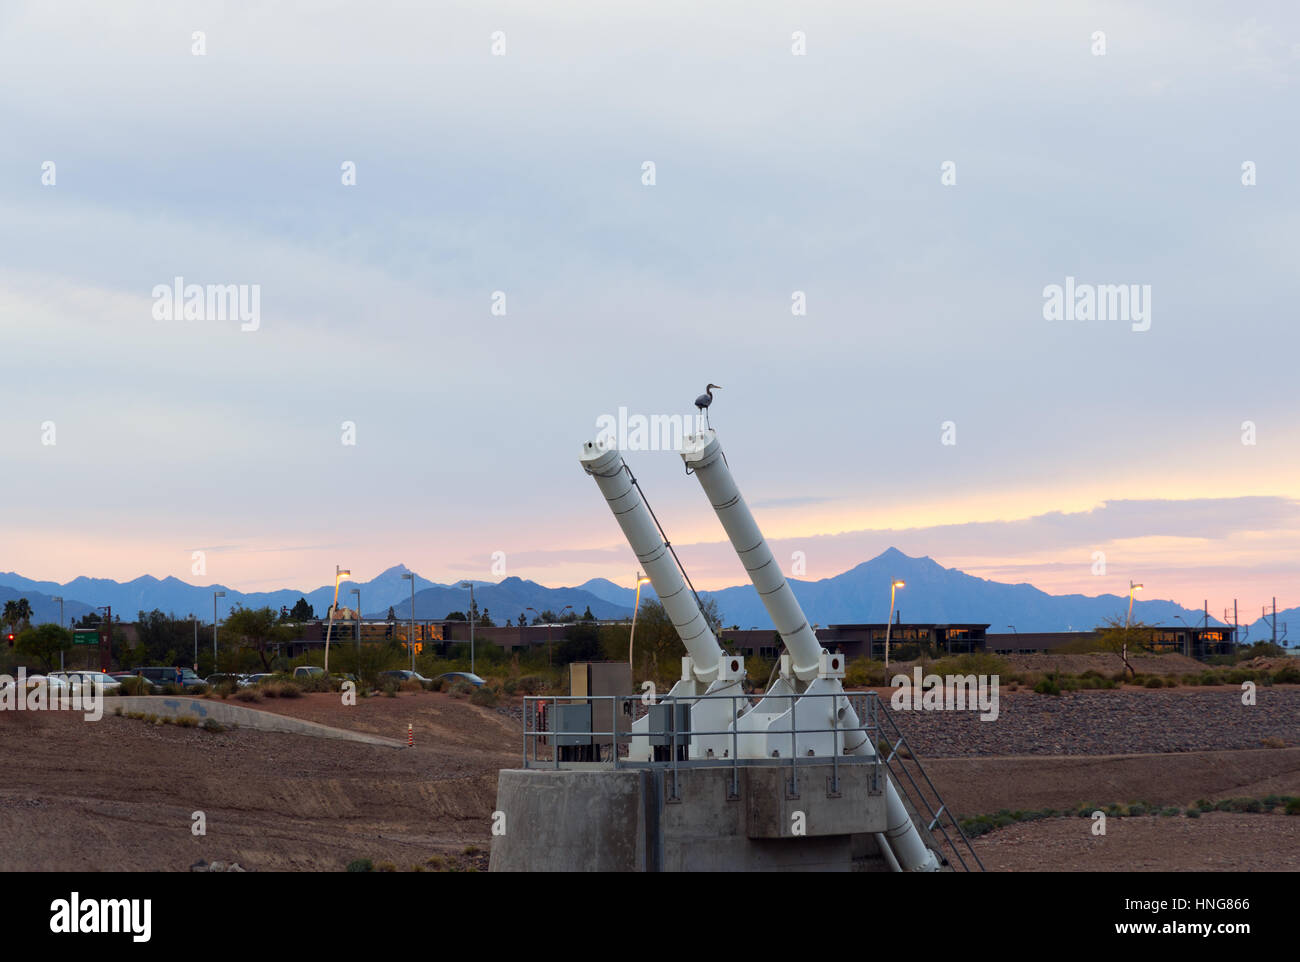 Tempe Town Lake Dam Hydraulic Cylinders With A Bird And Cloudy Sunset - Stock Image